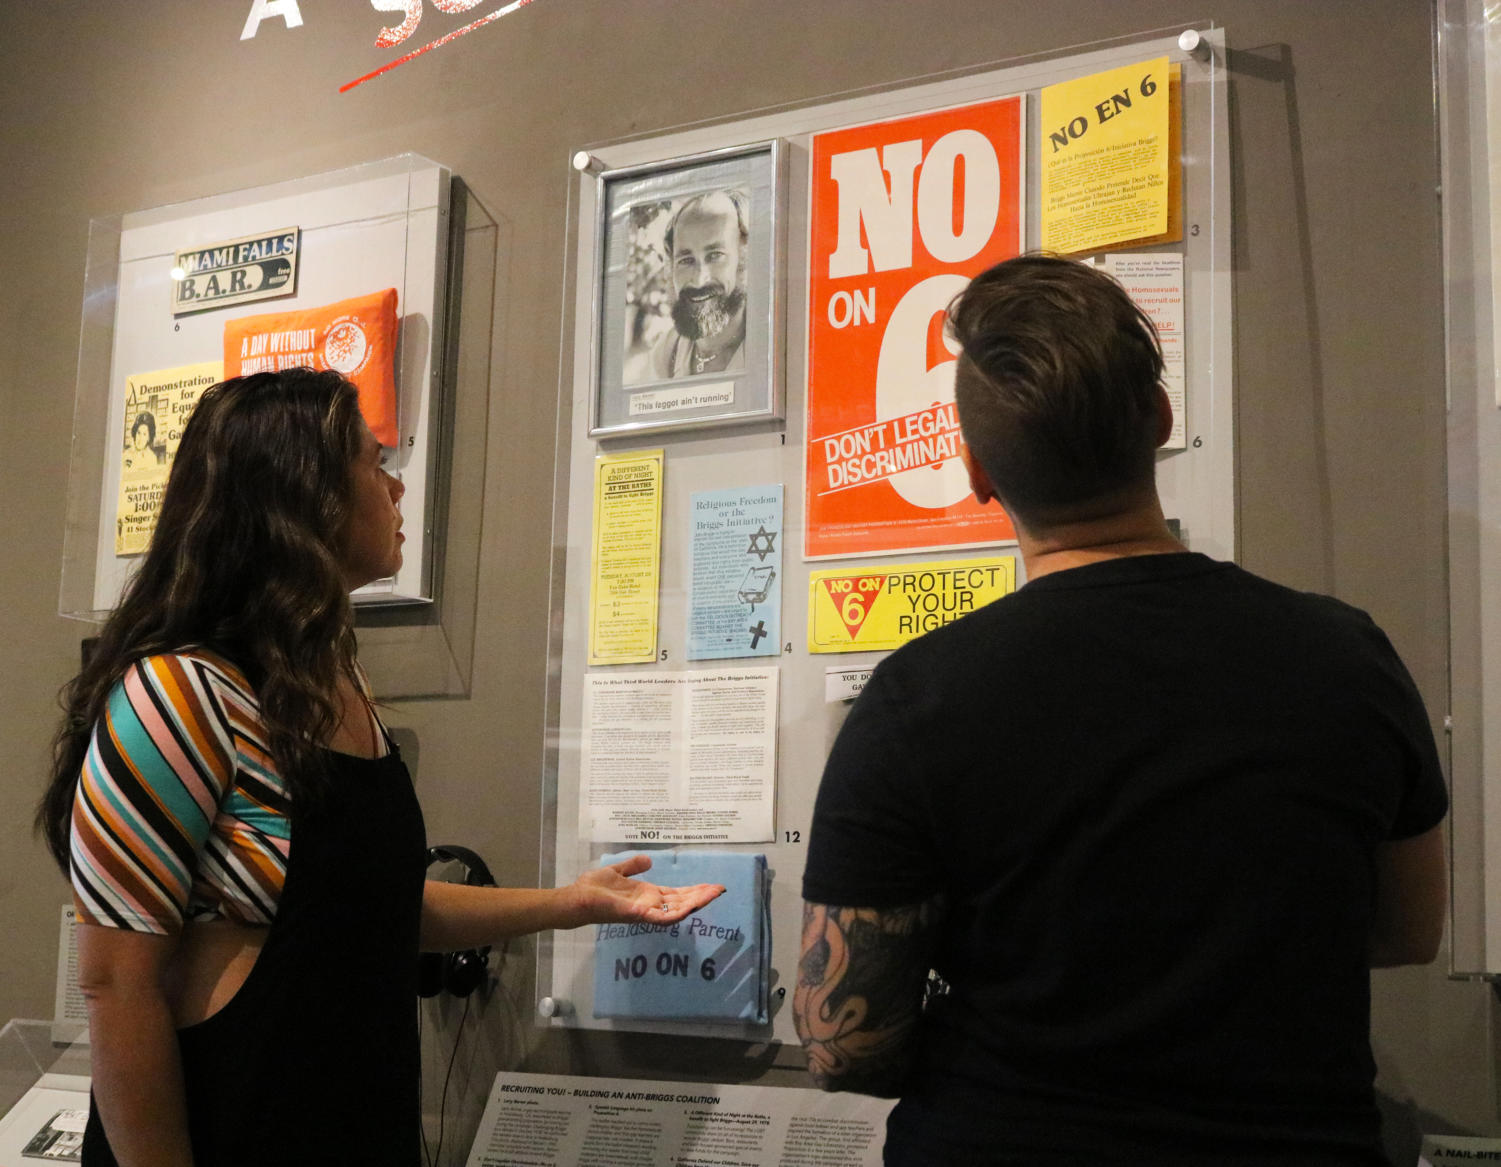 Jewelana+Wilson+%28left%29+and+her+wife%2C+Christina+Webb+%28right%29%2C+look+at+posters+and+propaganda+at+the+GLBT+Historical+Society+Museum%27s+exhibition+on+the+Briggs+Initiative.